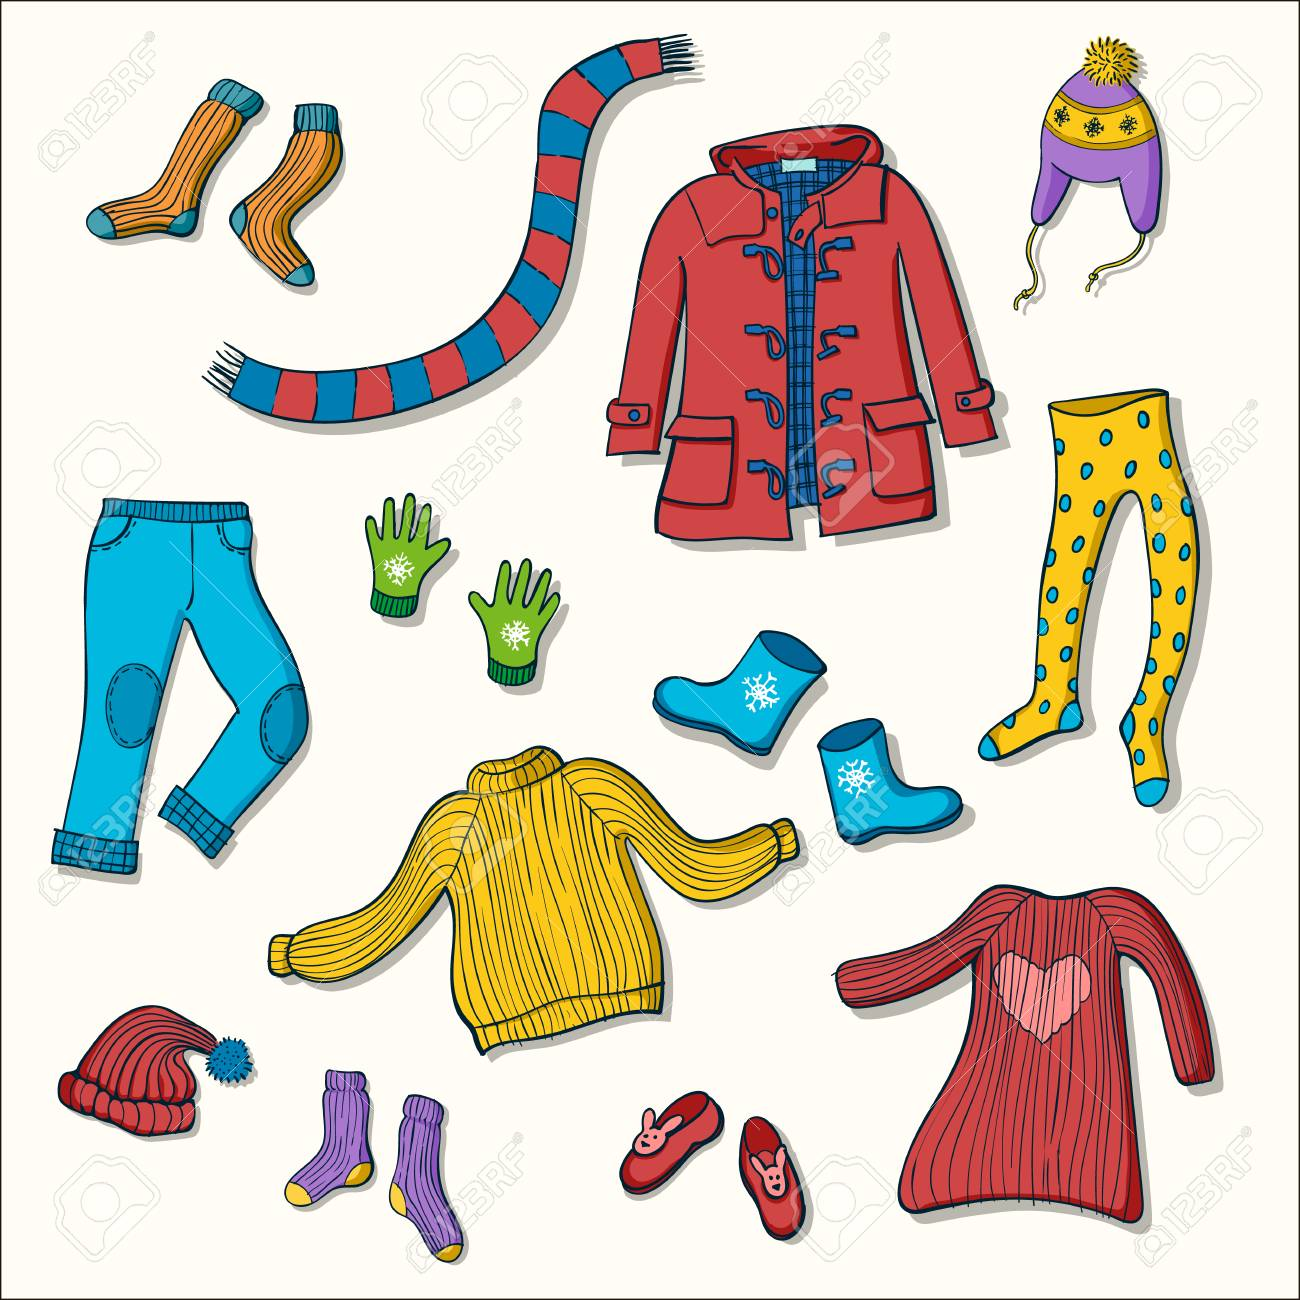 688ec797 Vector - Winter clothing set of vector illustrations. Collection of warm  clothes: jumper, coat, scarf, gloves and hats in colorful hand drawn style